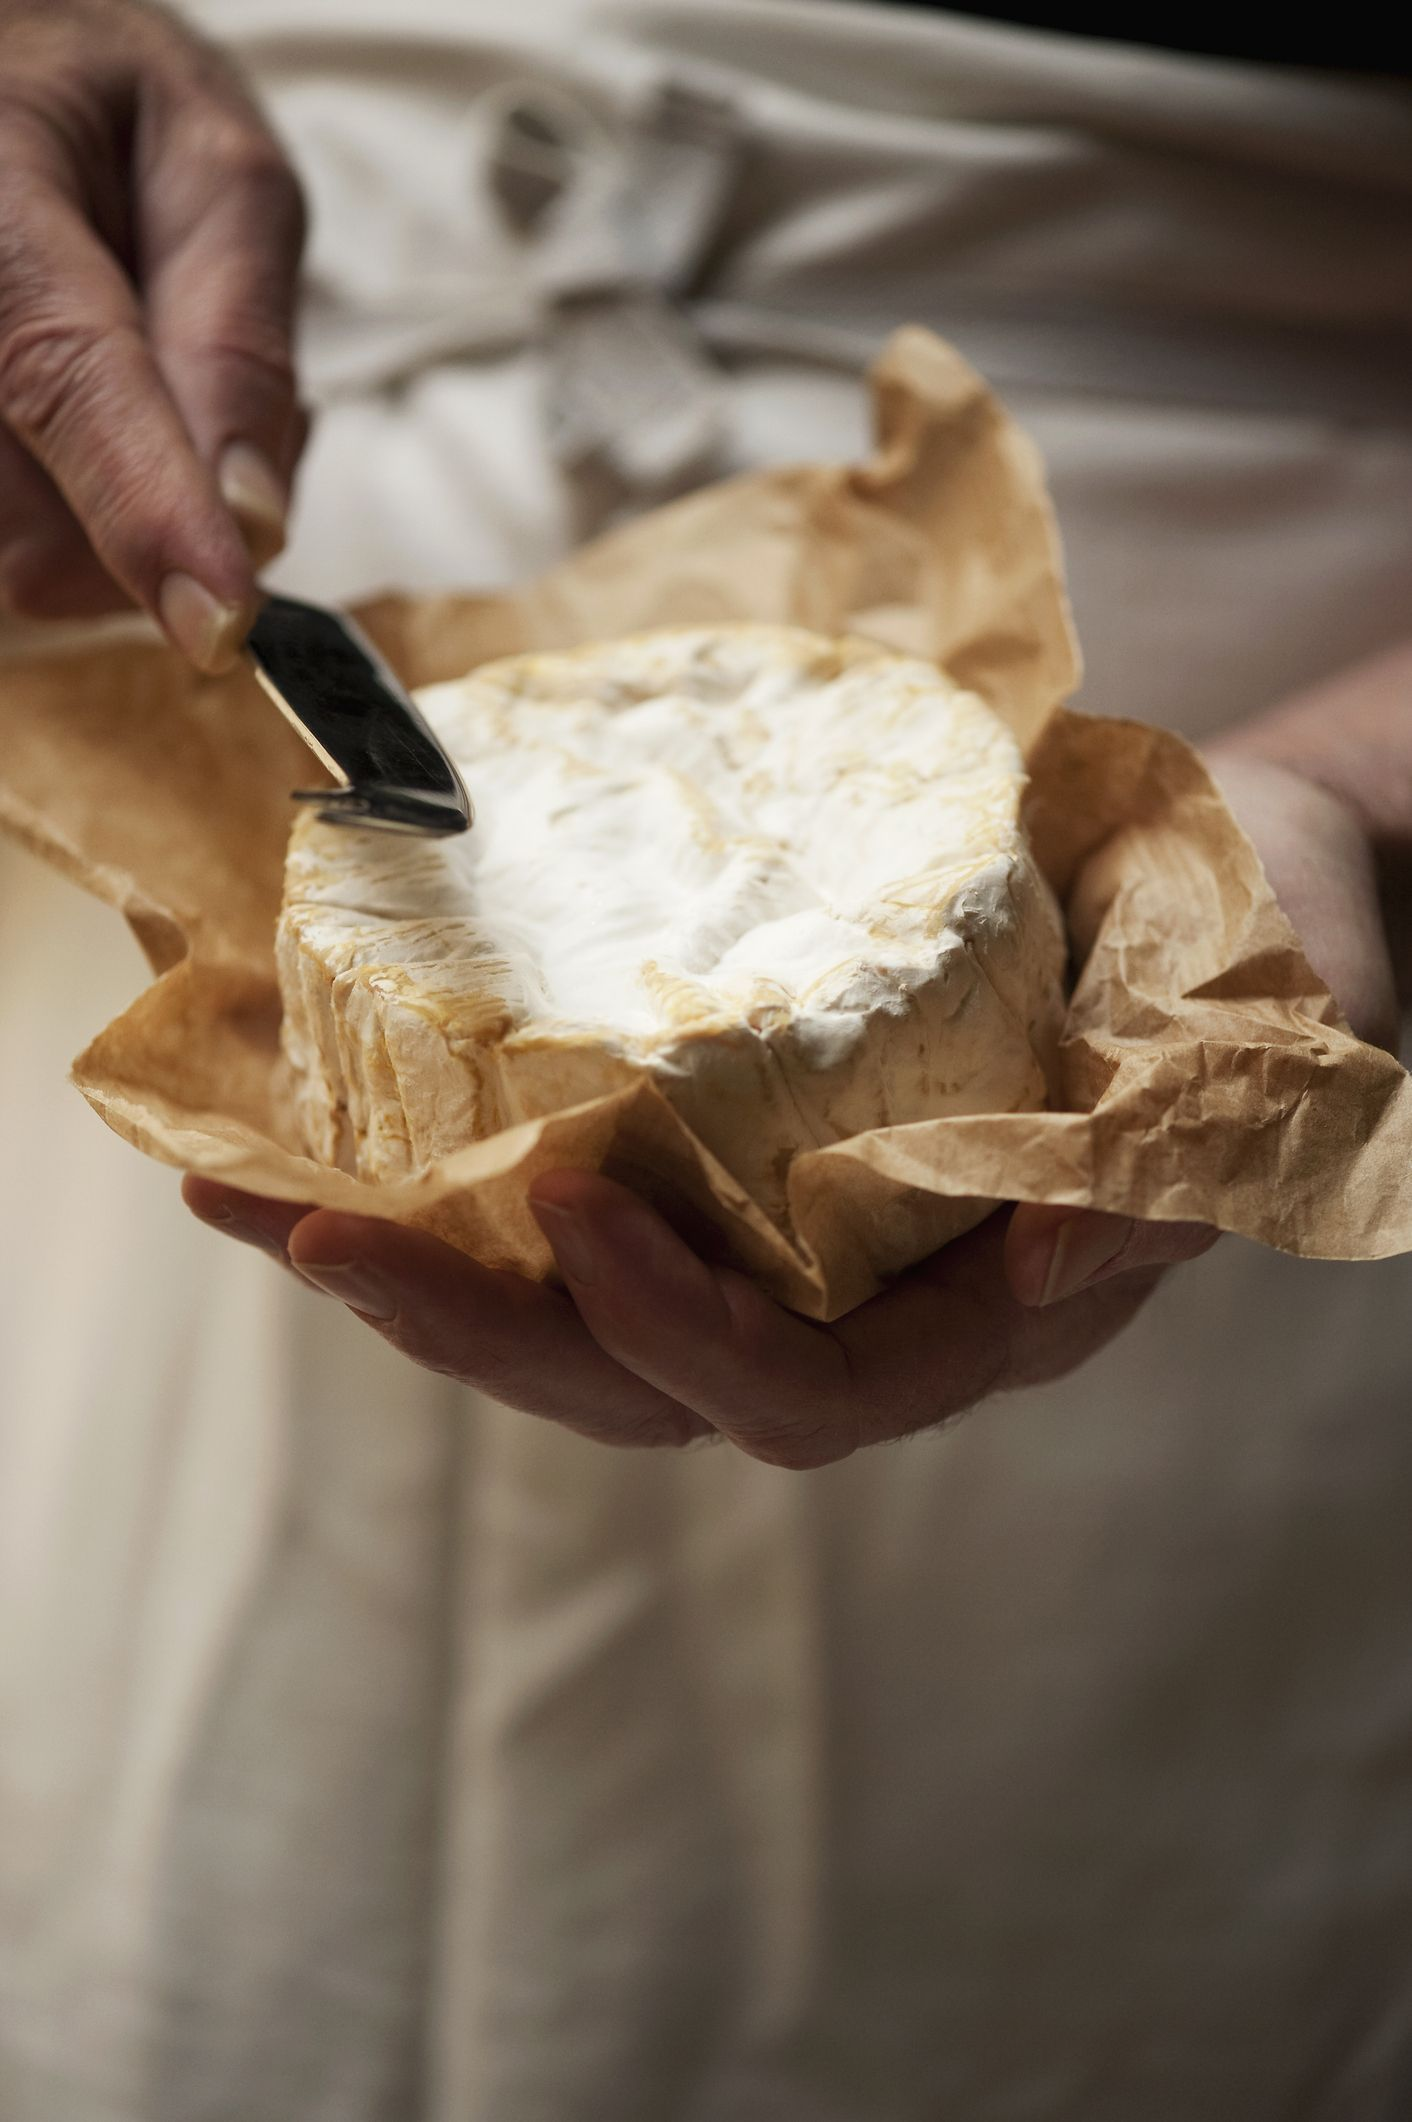 Cheese_gettyimages-155292336